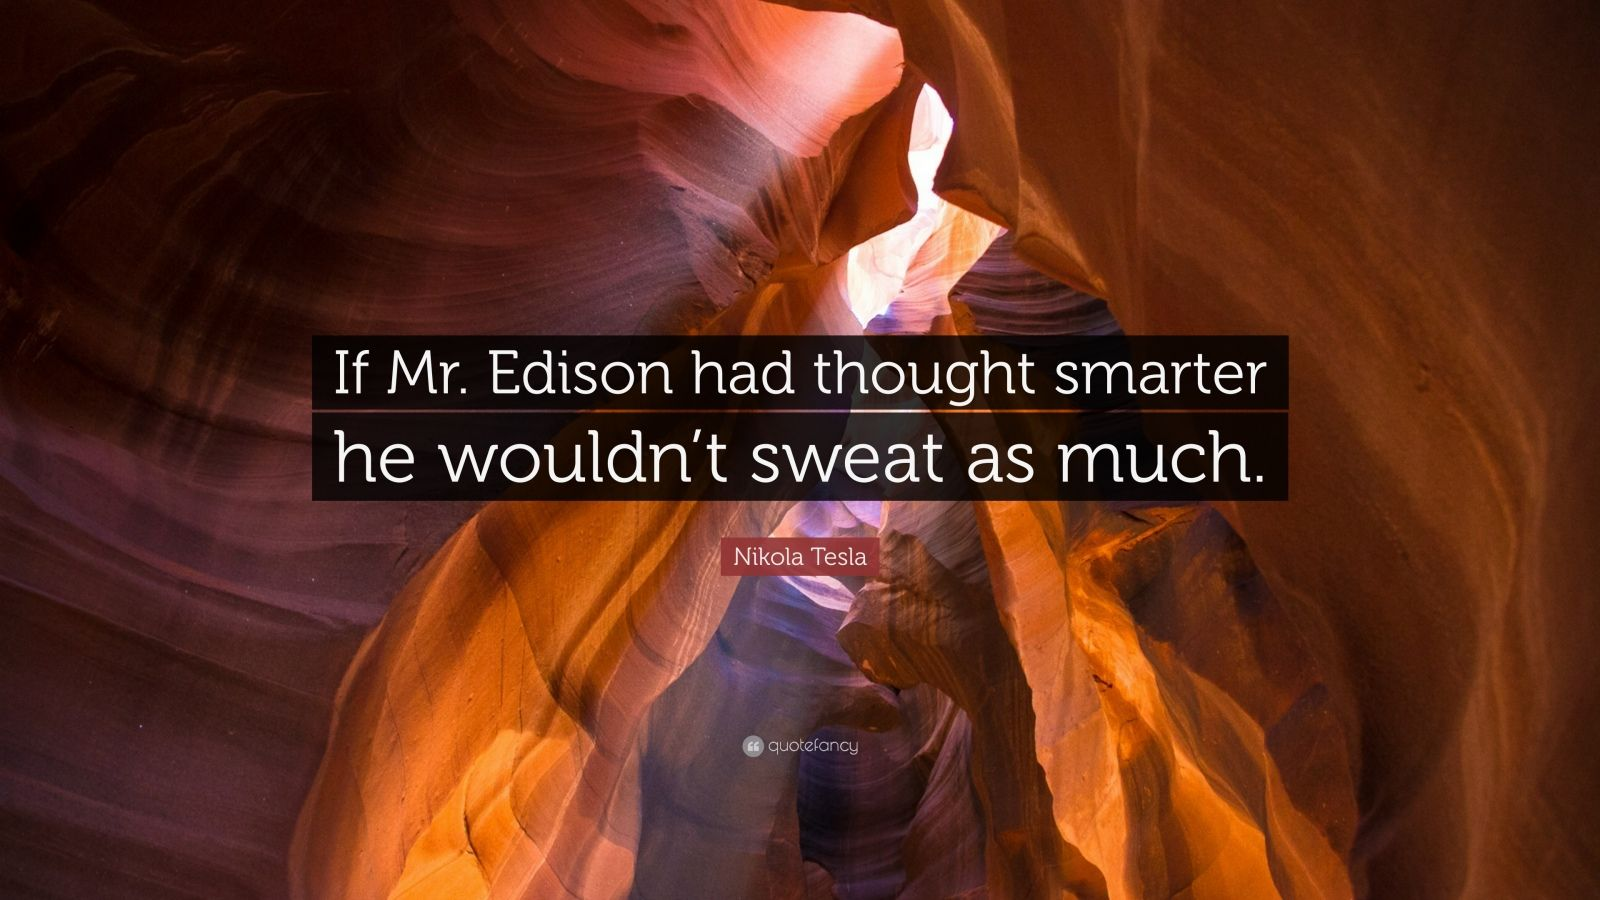 """Nikola Tesla Quote: """"If Mr. Edison had thought smarter he wouldn't sweat as much."""""""